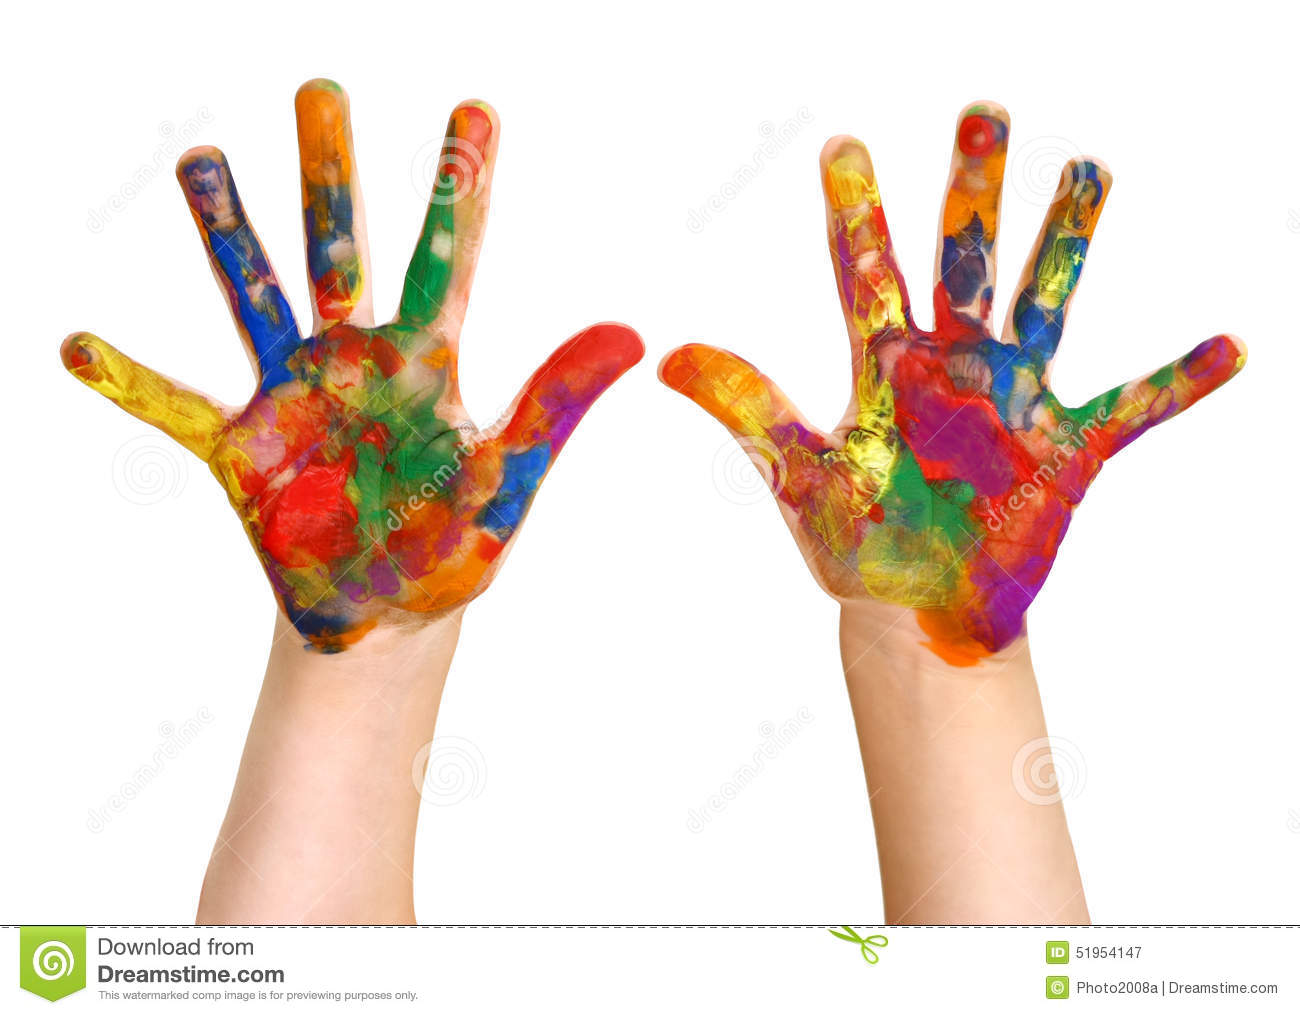 Kindergartner rainbow hand painting painted hands stock for Watercolor paintings of hands